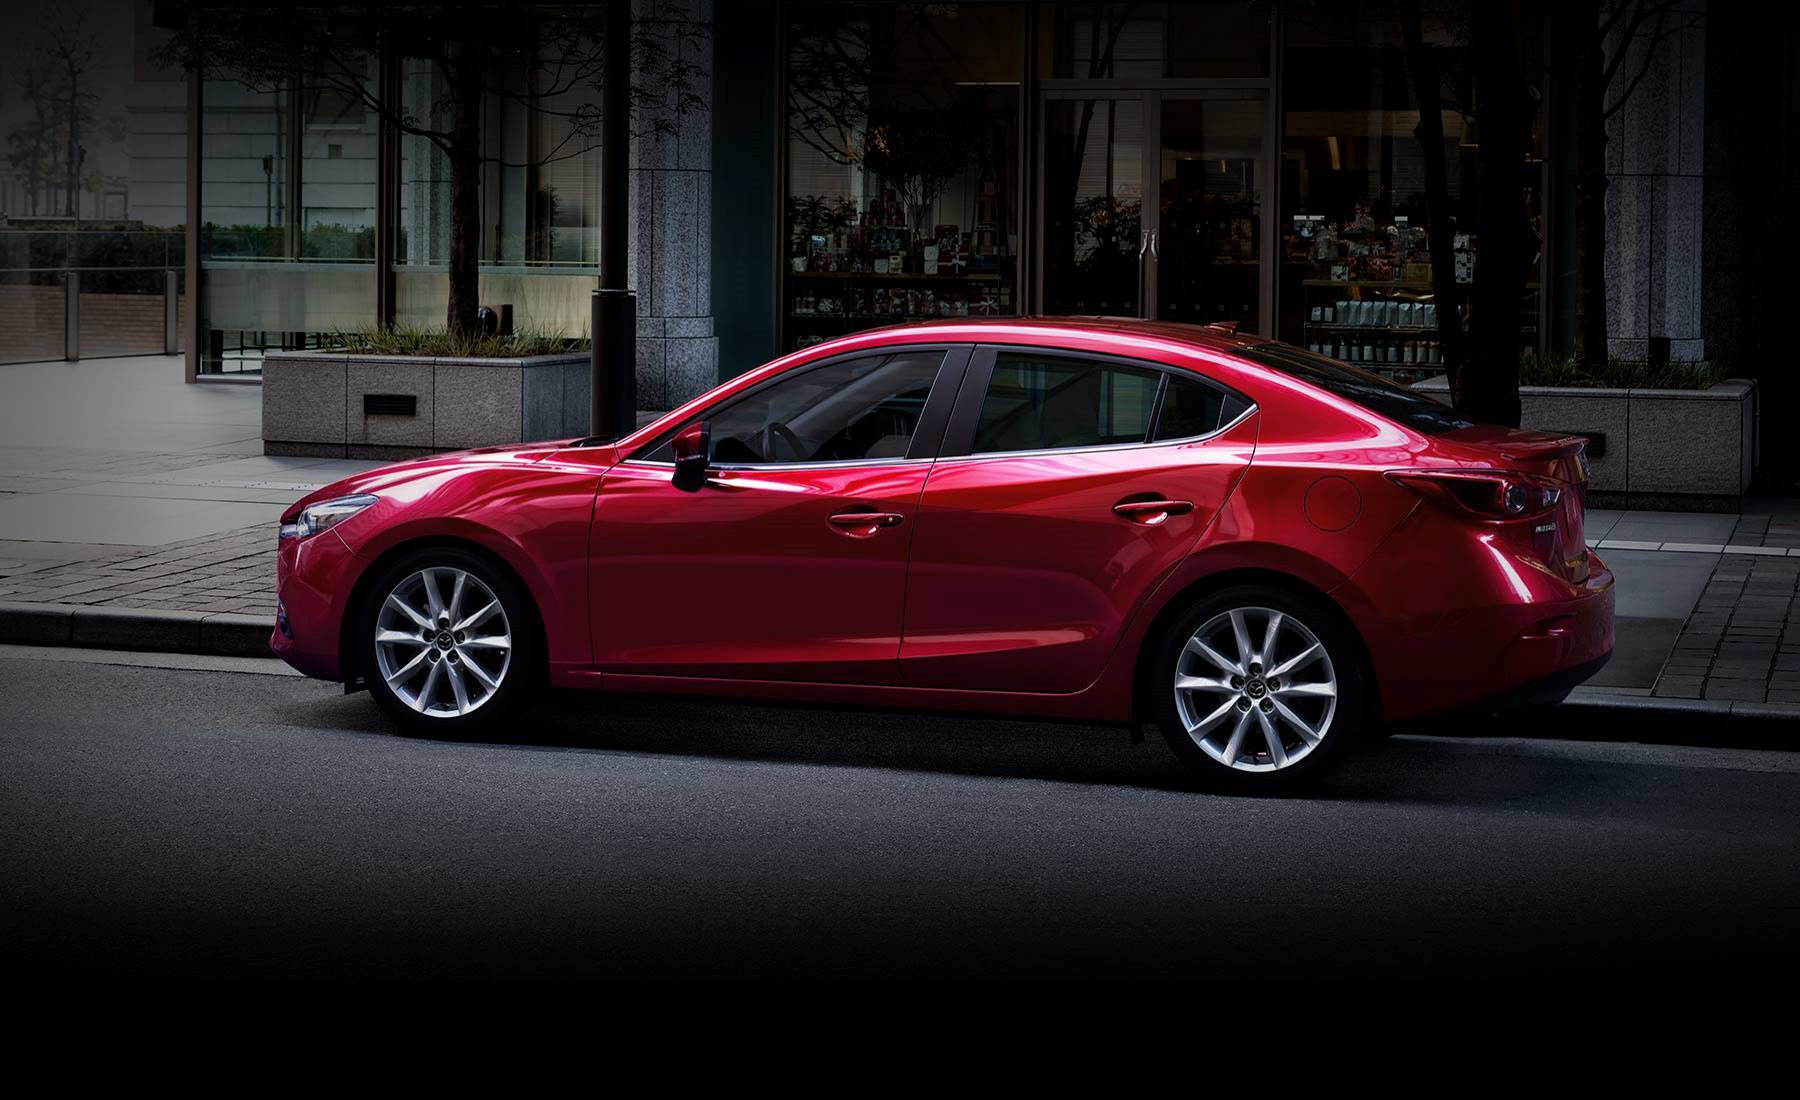 The New 2018 Mazda3 in Peoria, IL